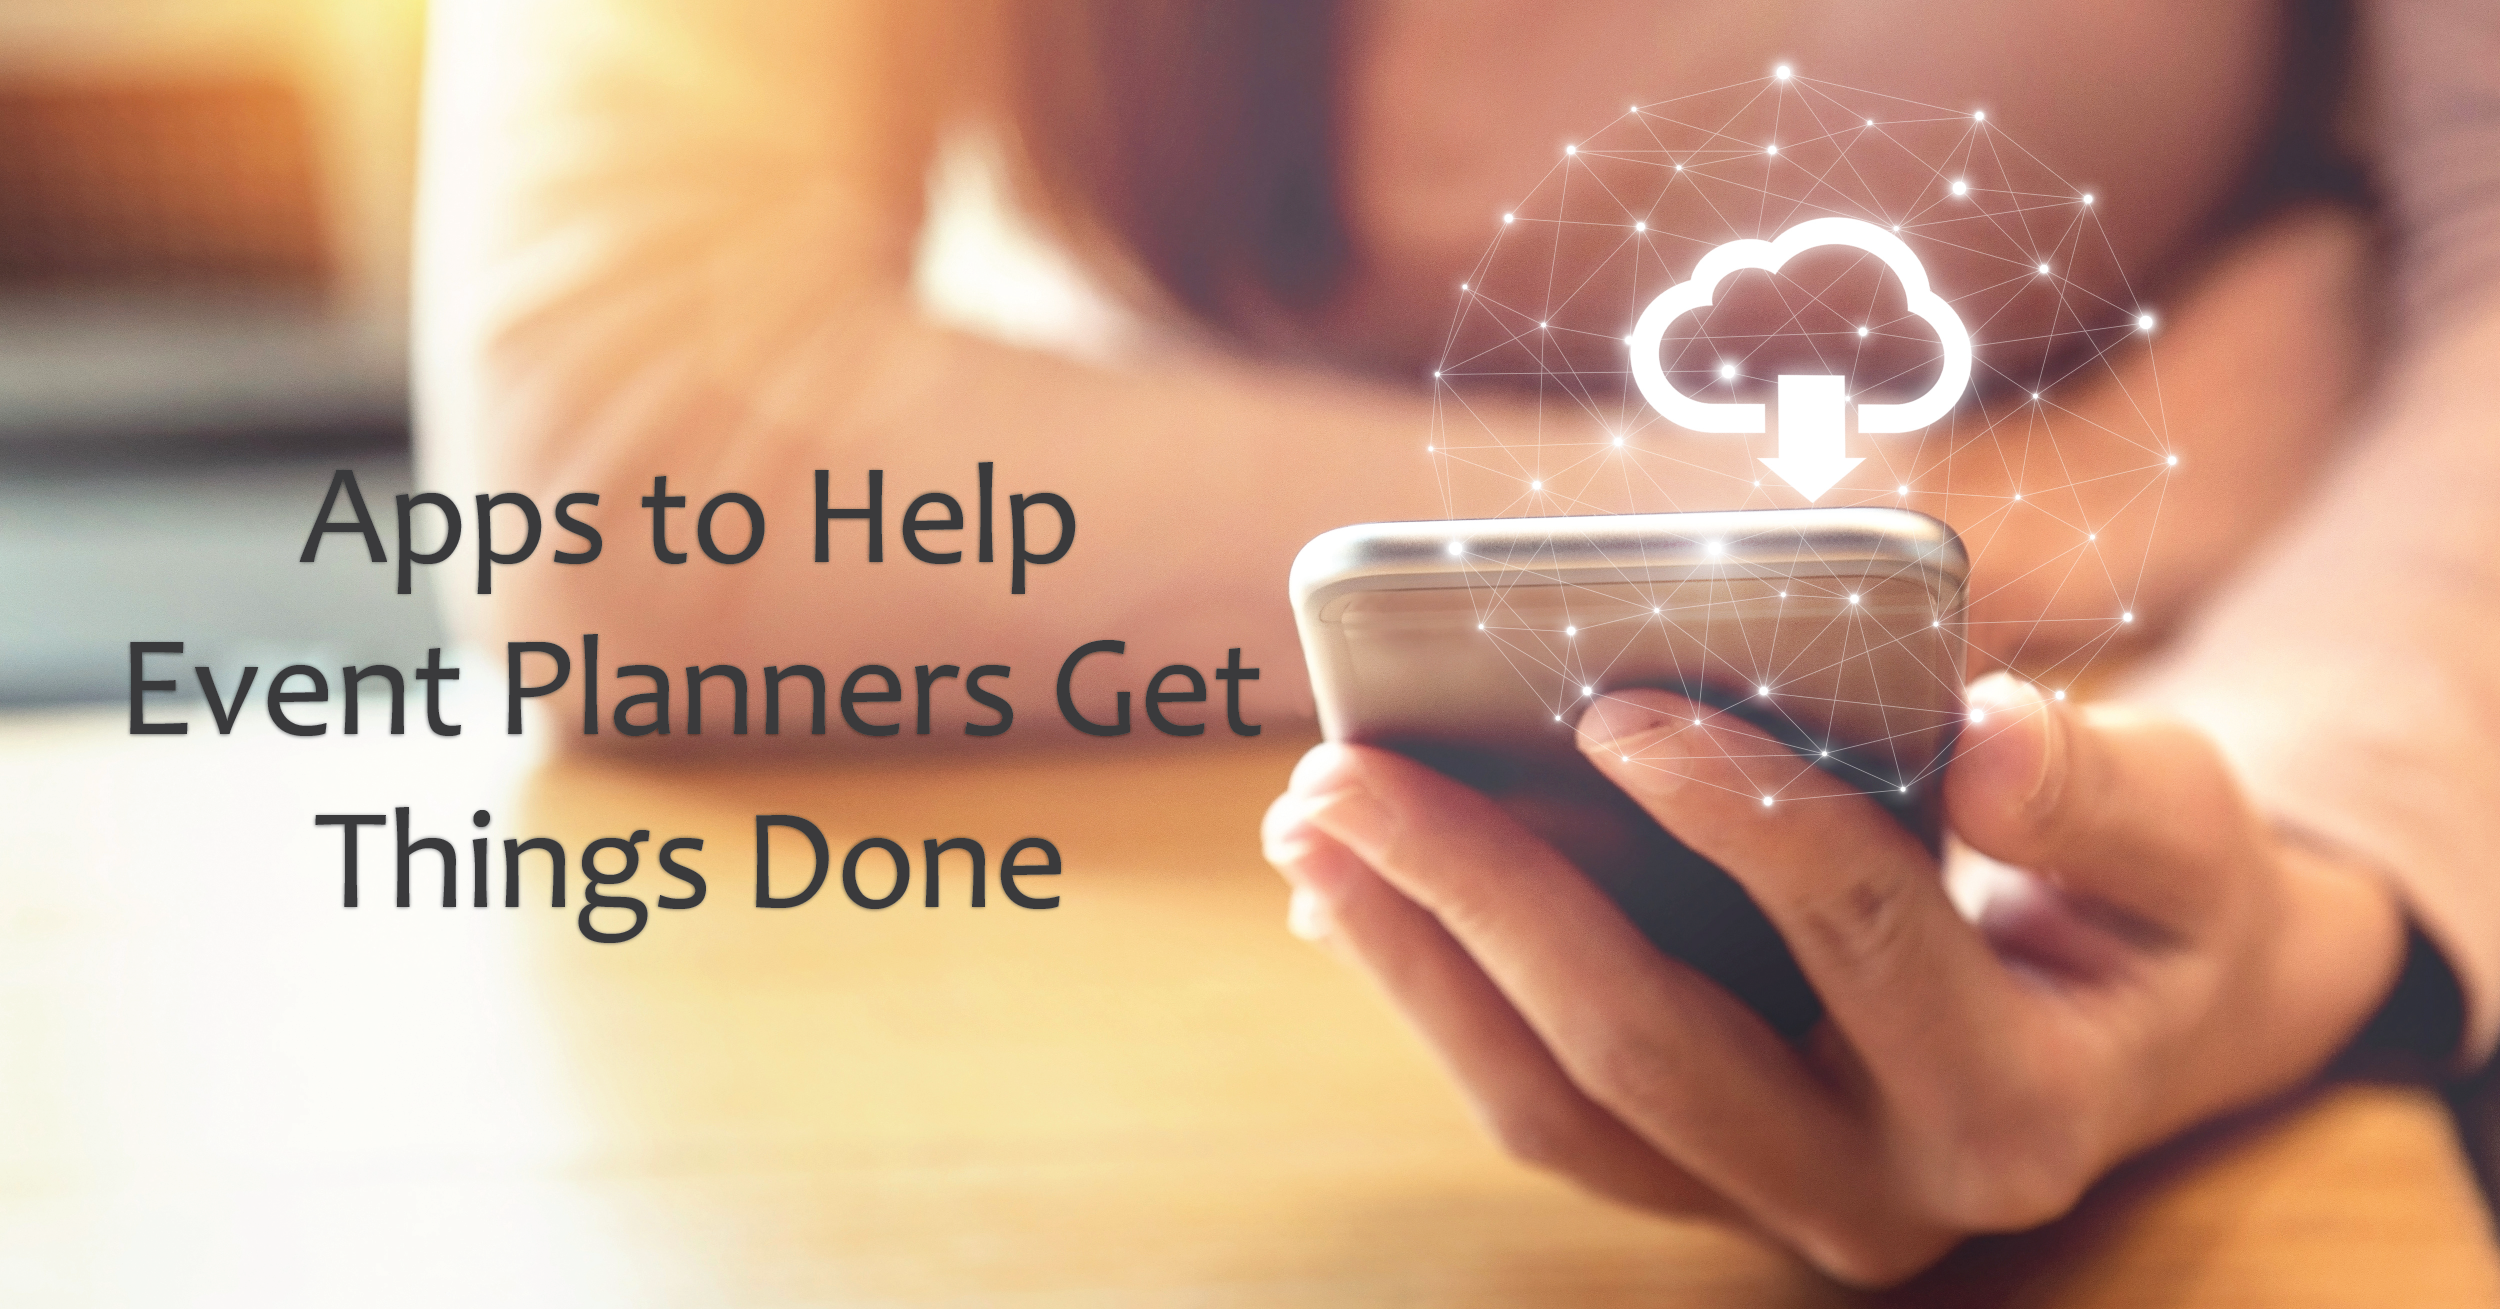 Event Planner Apps to Help Get Things Done